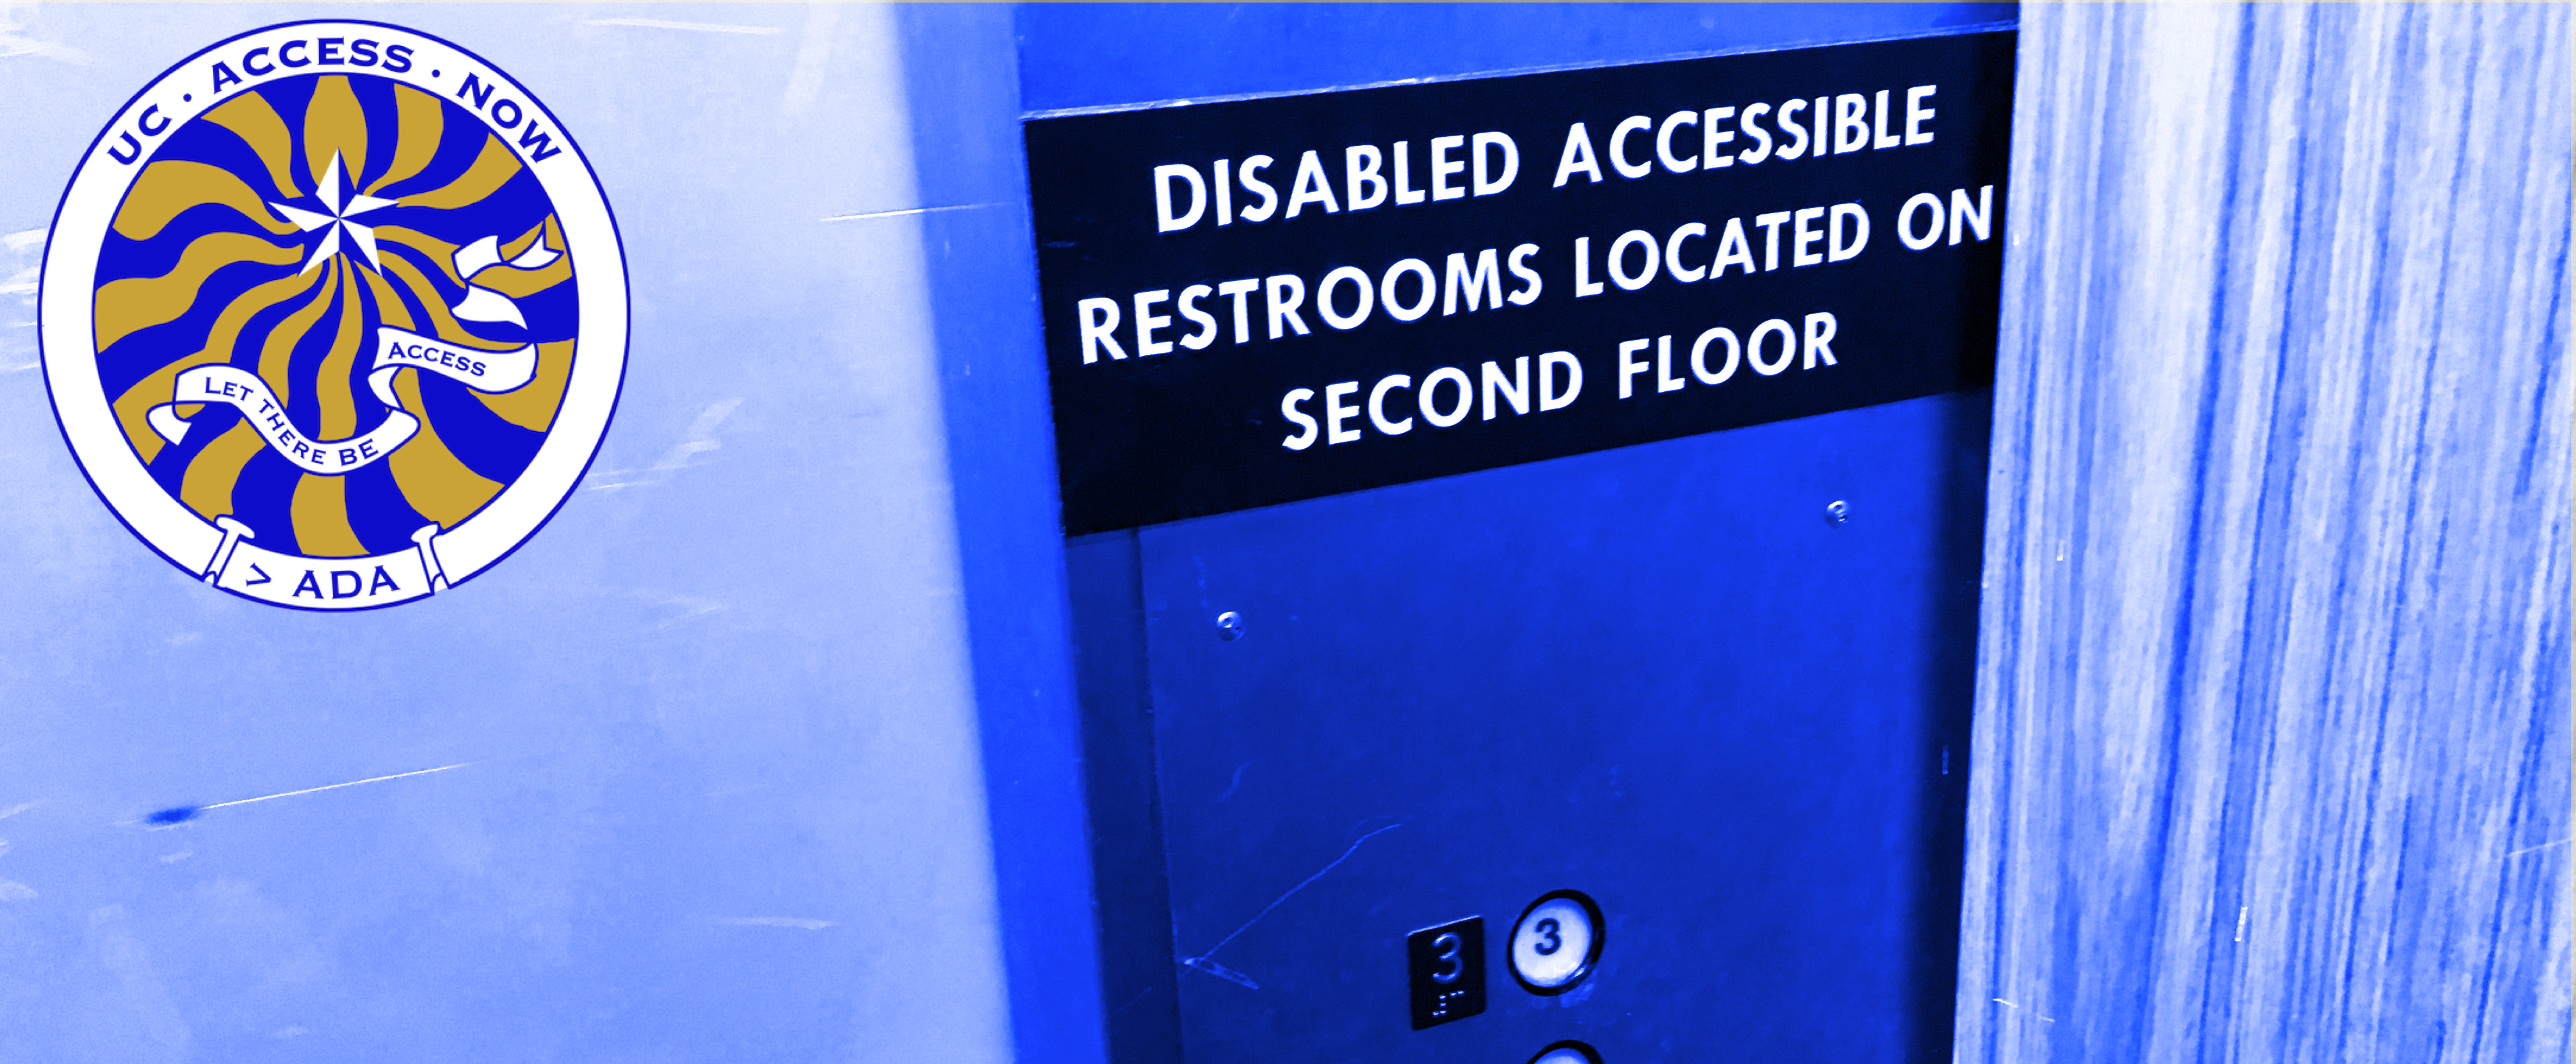 "Photo of beat-up mid-20th century narrow elevator with sign above buttons on the control panel that says ""Disabled Accessible Restrooms Located on Second Floor"", which is admitting that not every floor has disabled-accessible restrooms. The photo has a blue filter to go harmoniously with the blue & gold UC Access Now logo."